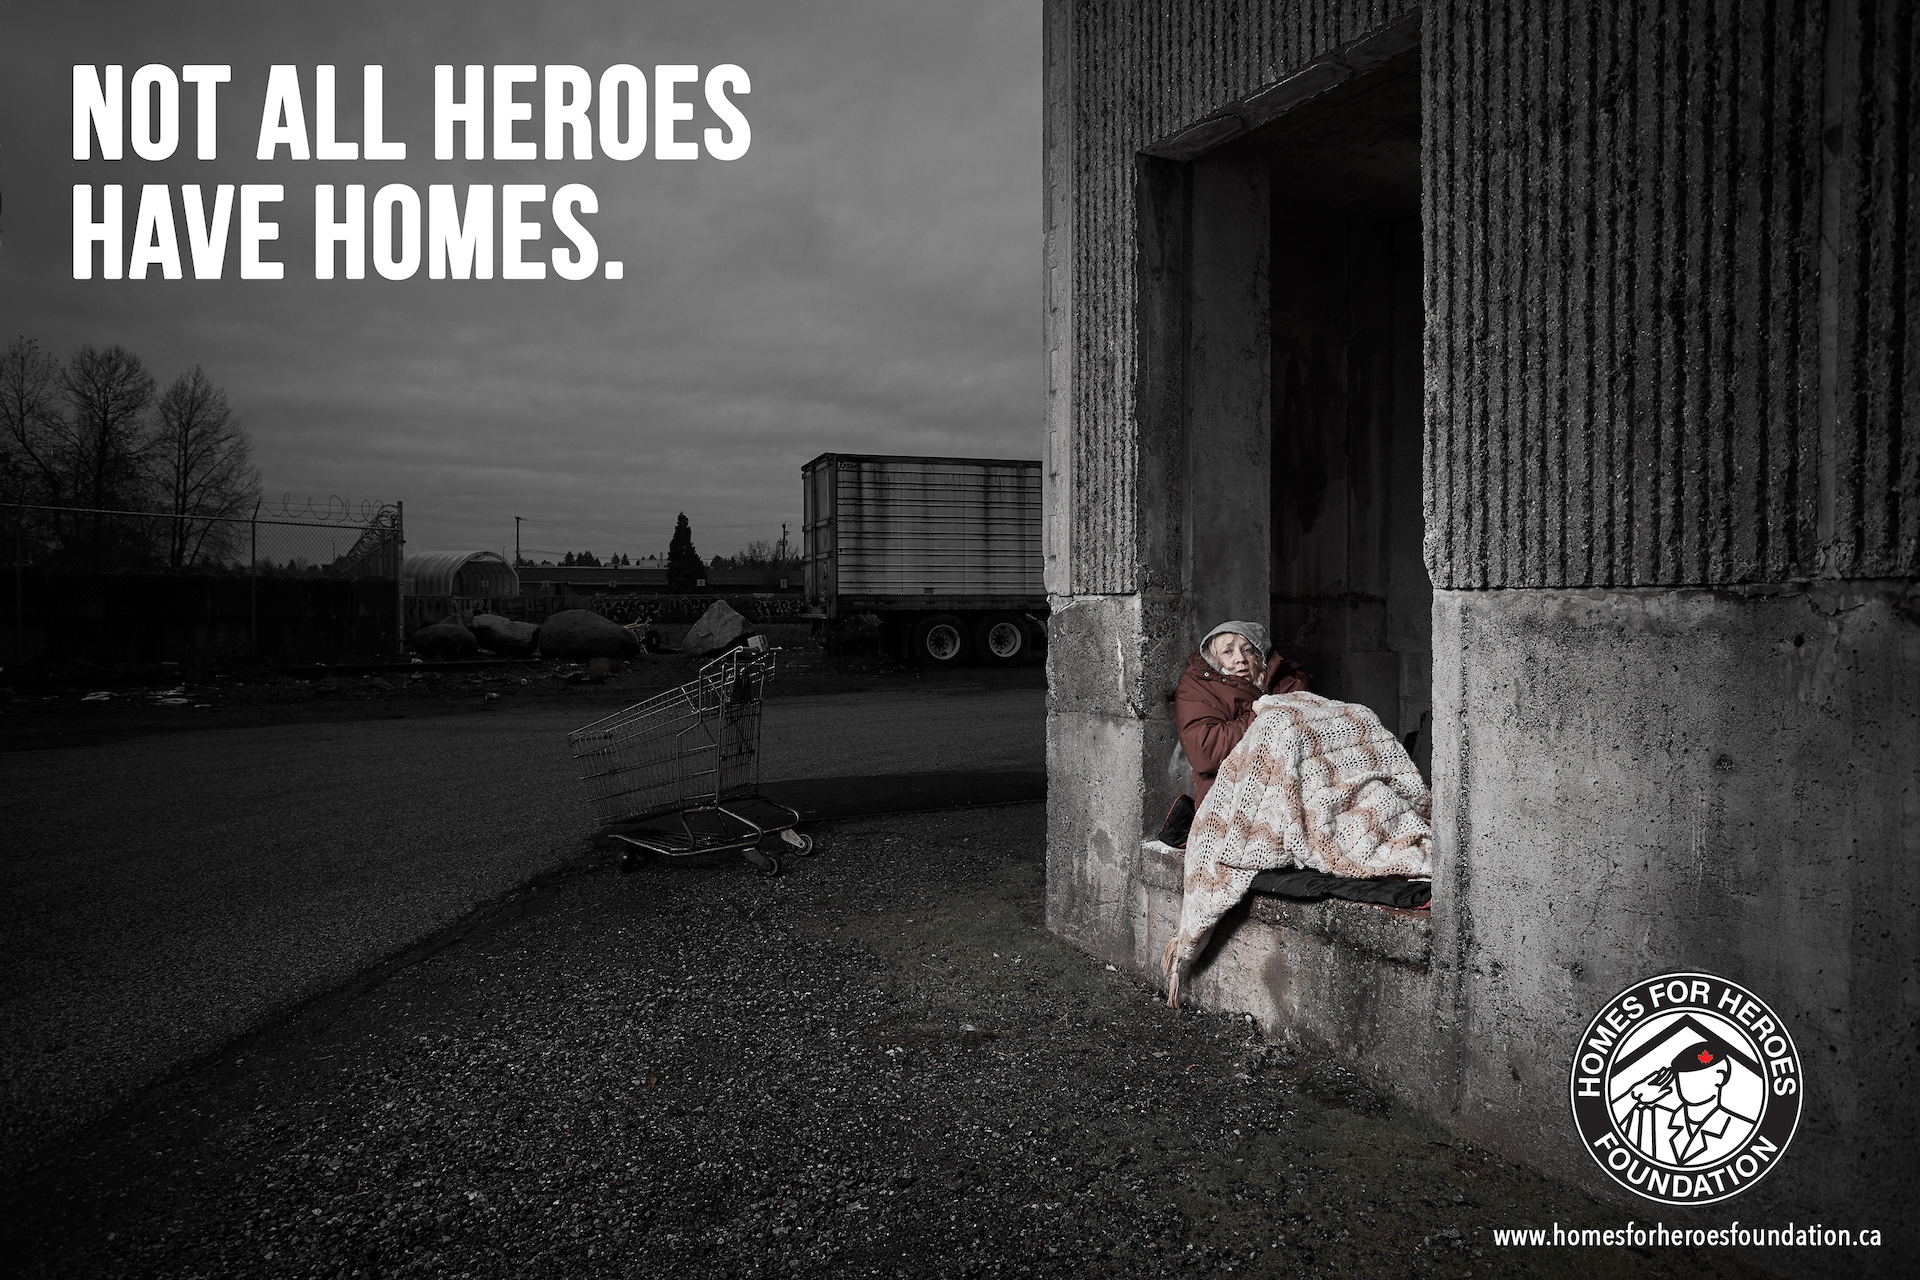 Vancouver homeless veterans ad campaign